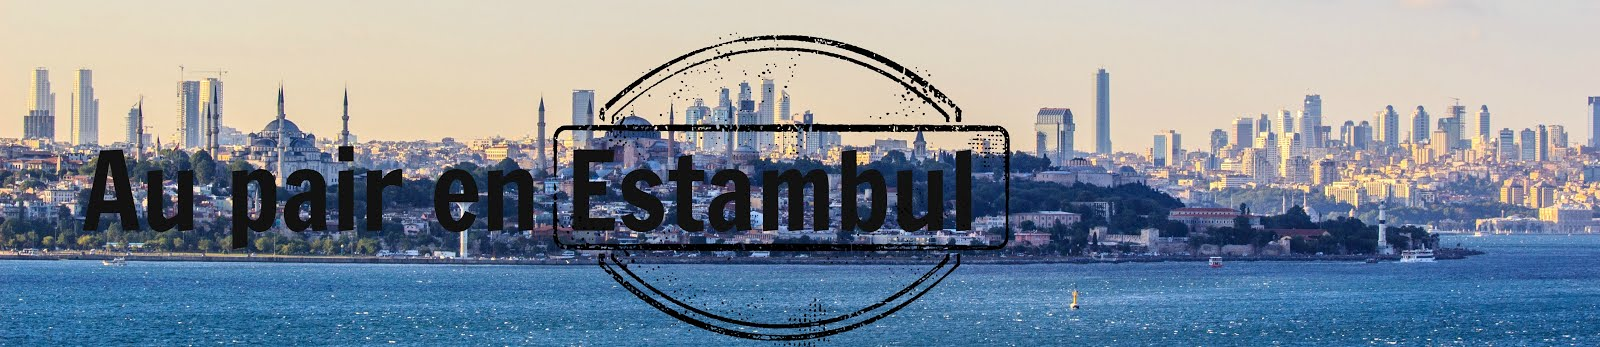 Au pair en Estambul